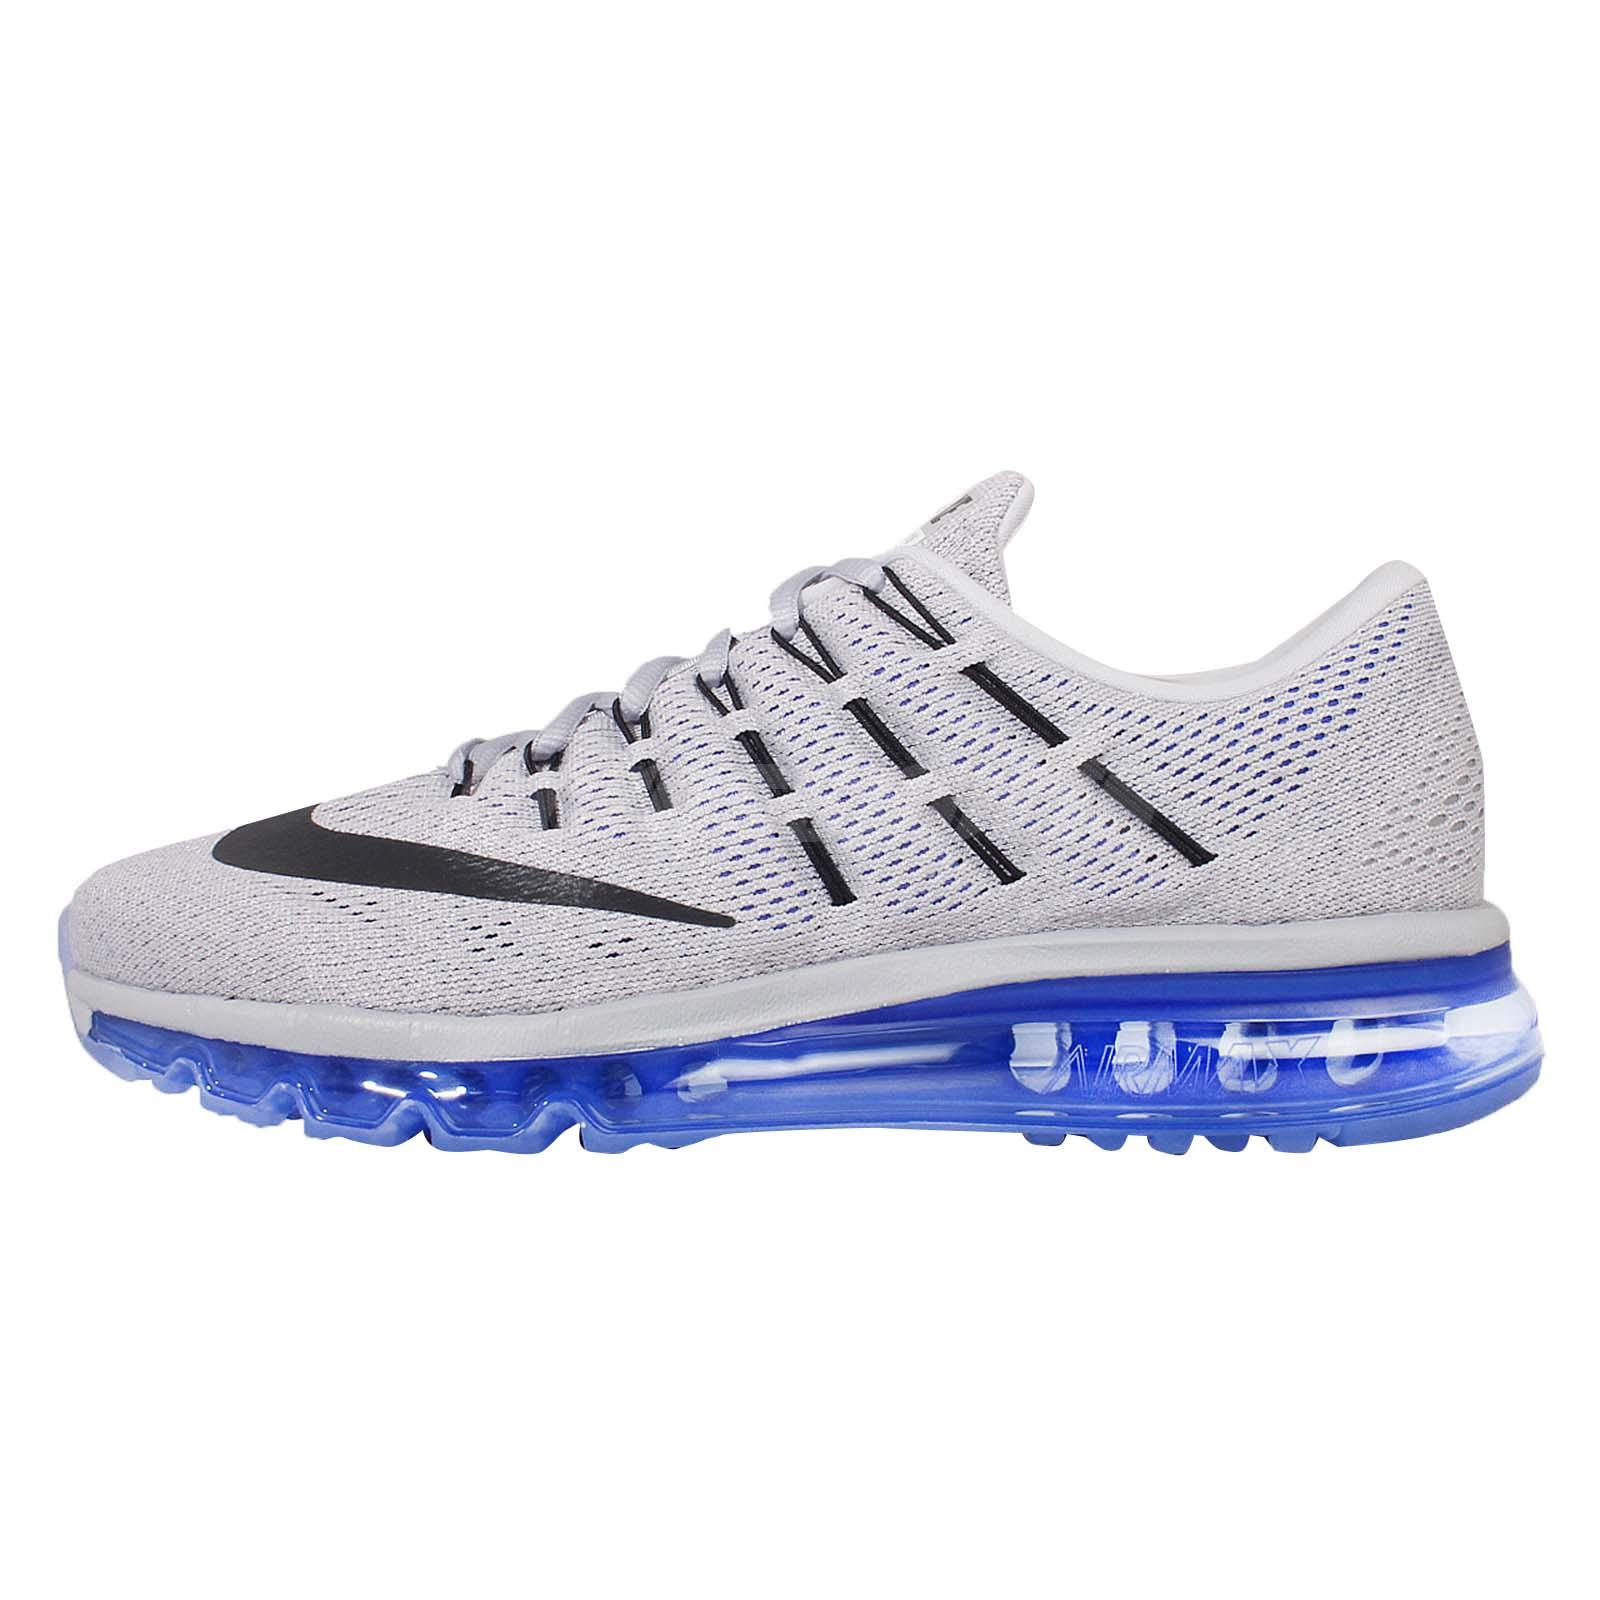 eb1046a992245 Nike Air Max 2016 Grey Blue Mens Running Shoes Sneakers Trainers 806771-004